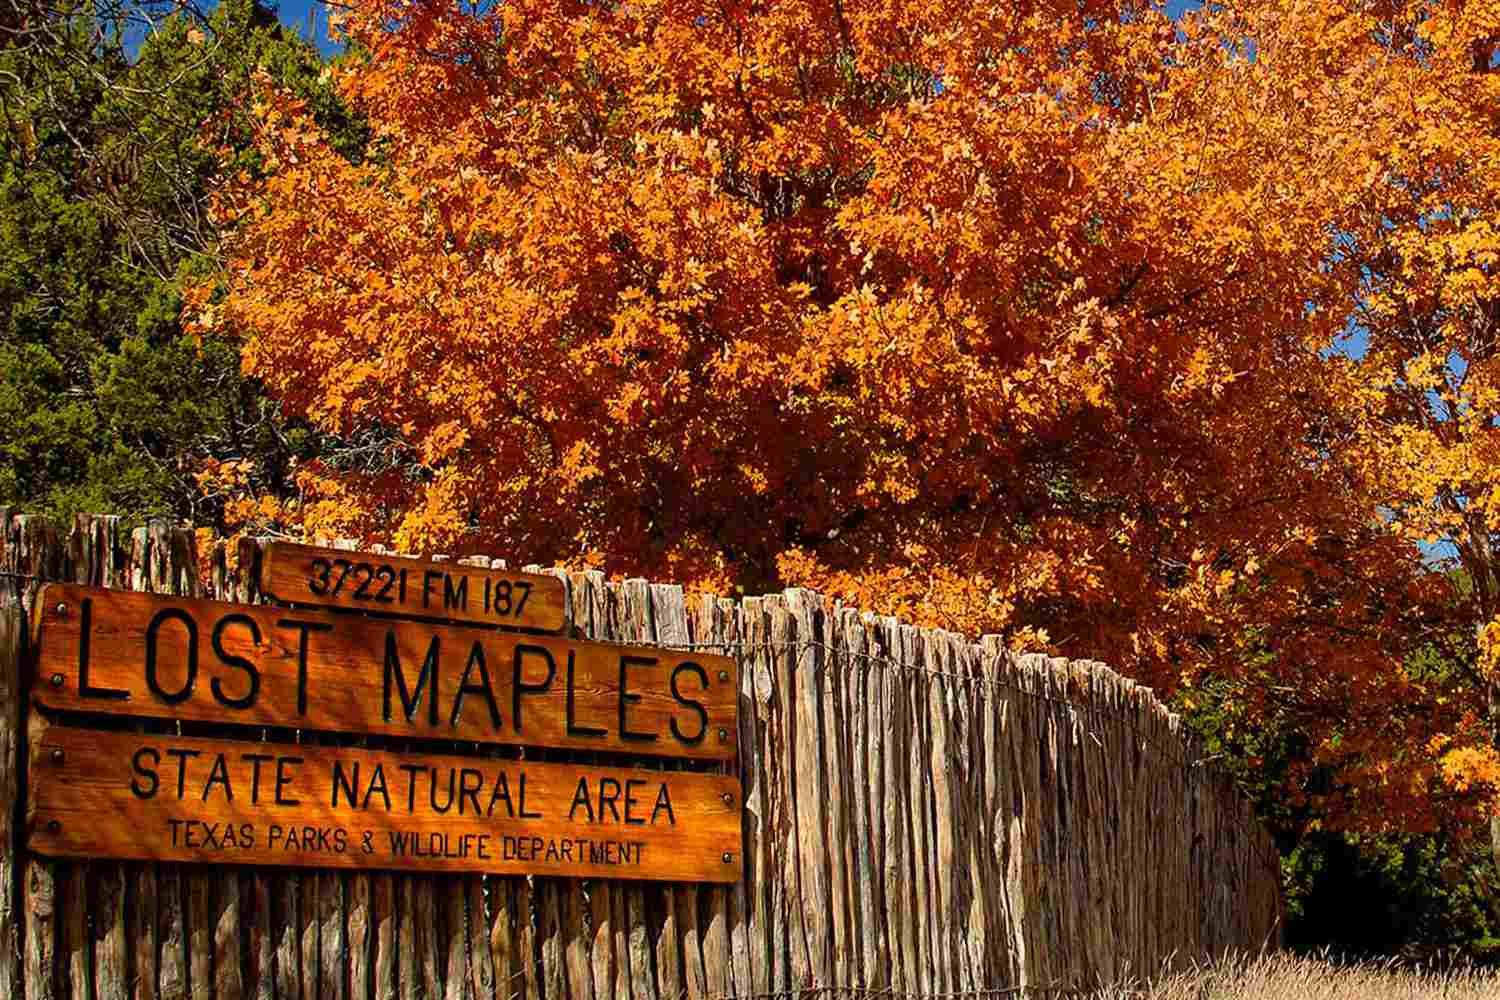 Lost Maples Texas